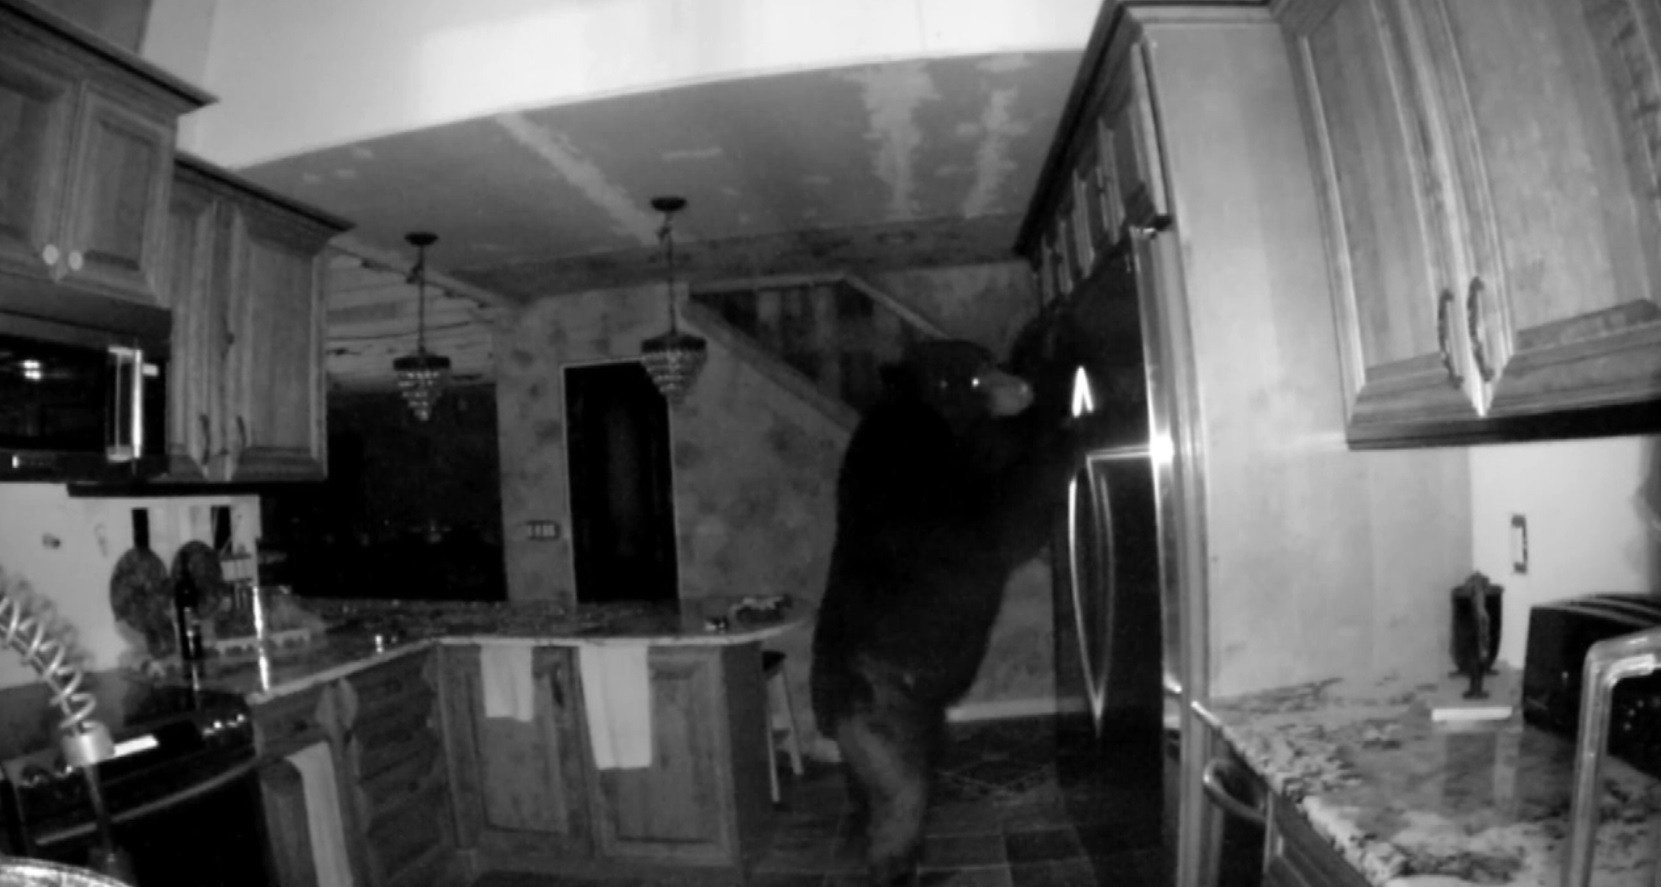 A surveillance camera captured a bear break into a home and open the fridge to have a snack on July 4, 2017